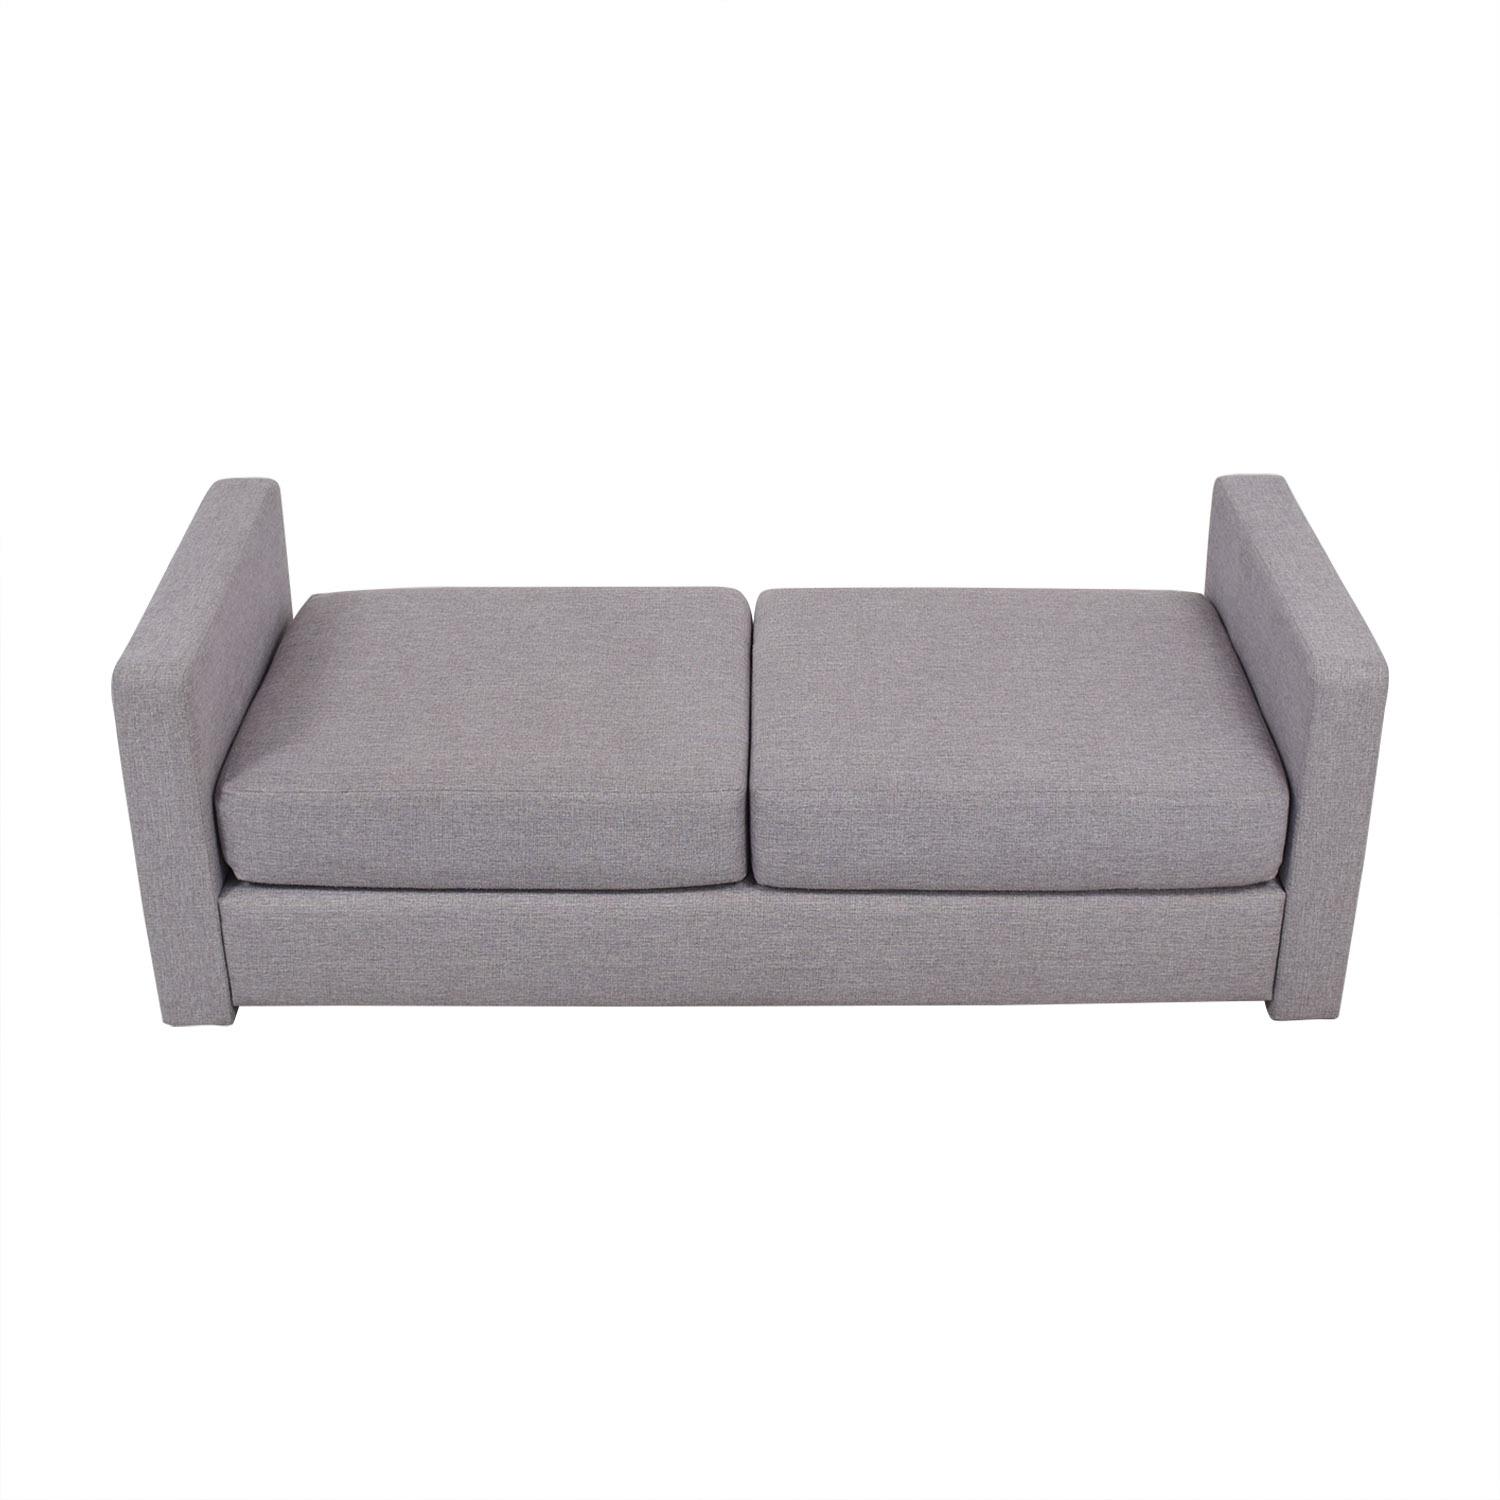 Breda Modern Backless Daybed Sofa second hand